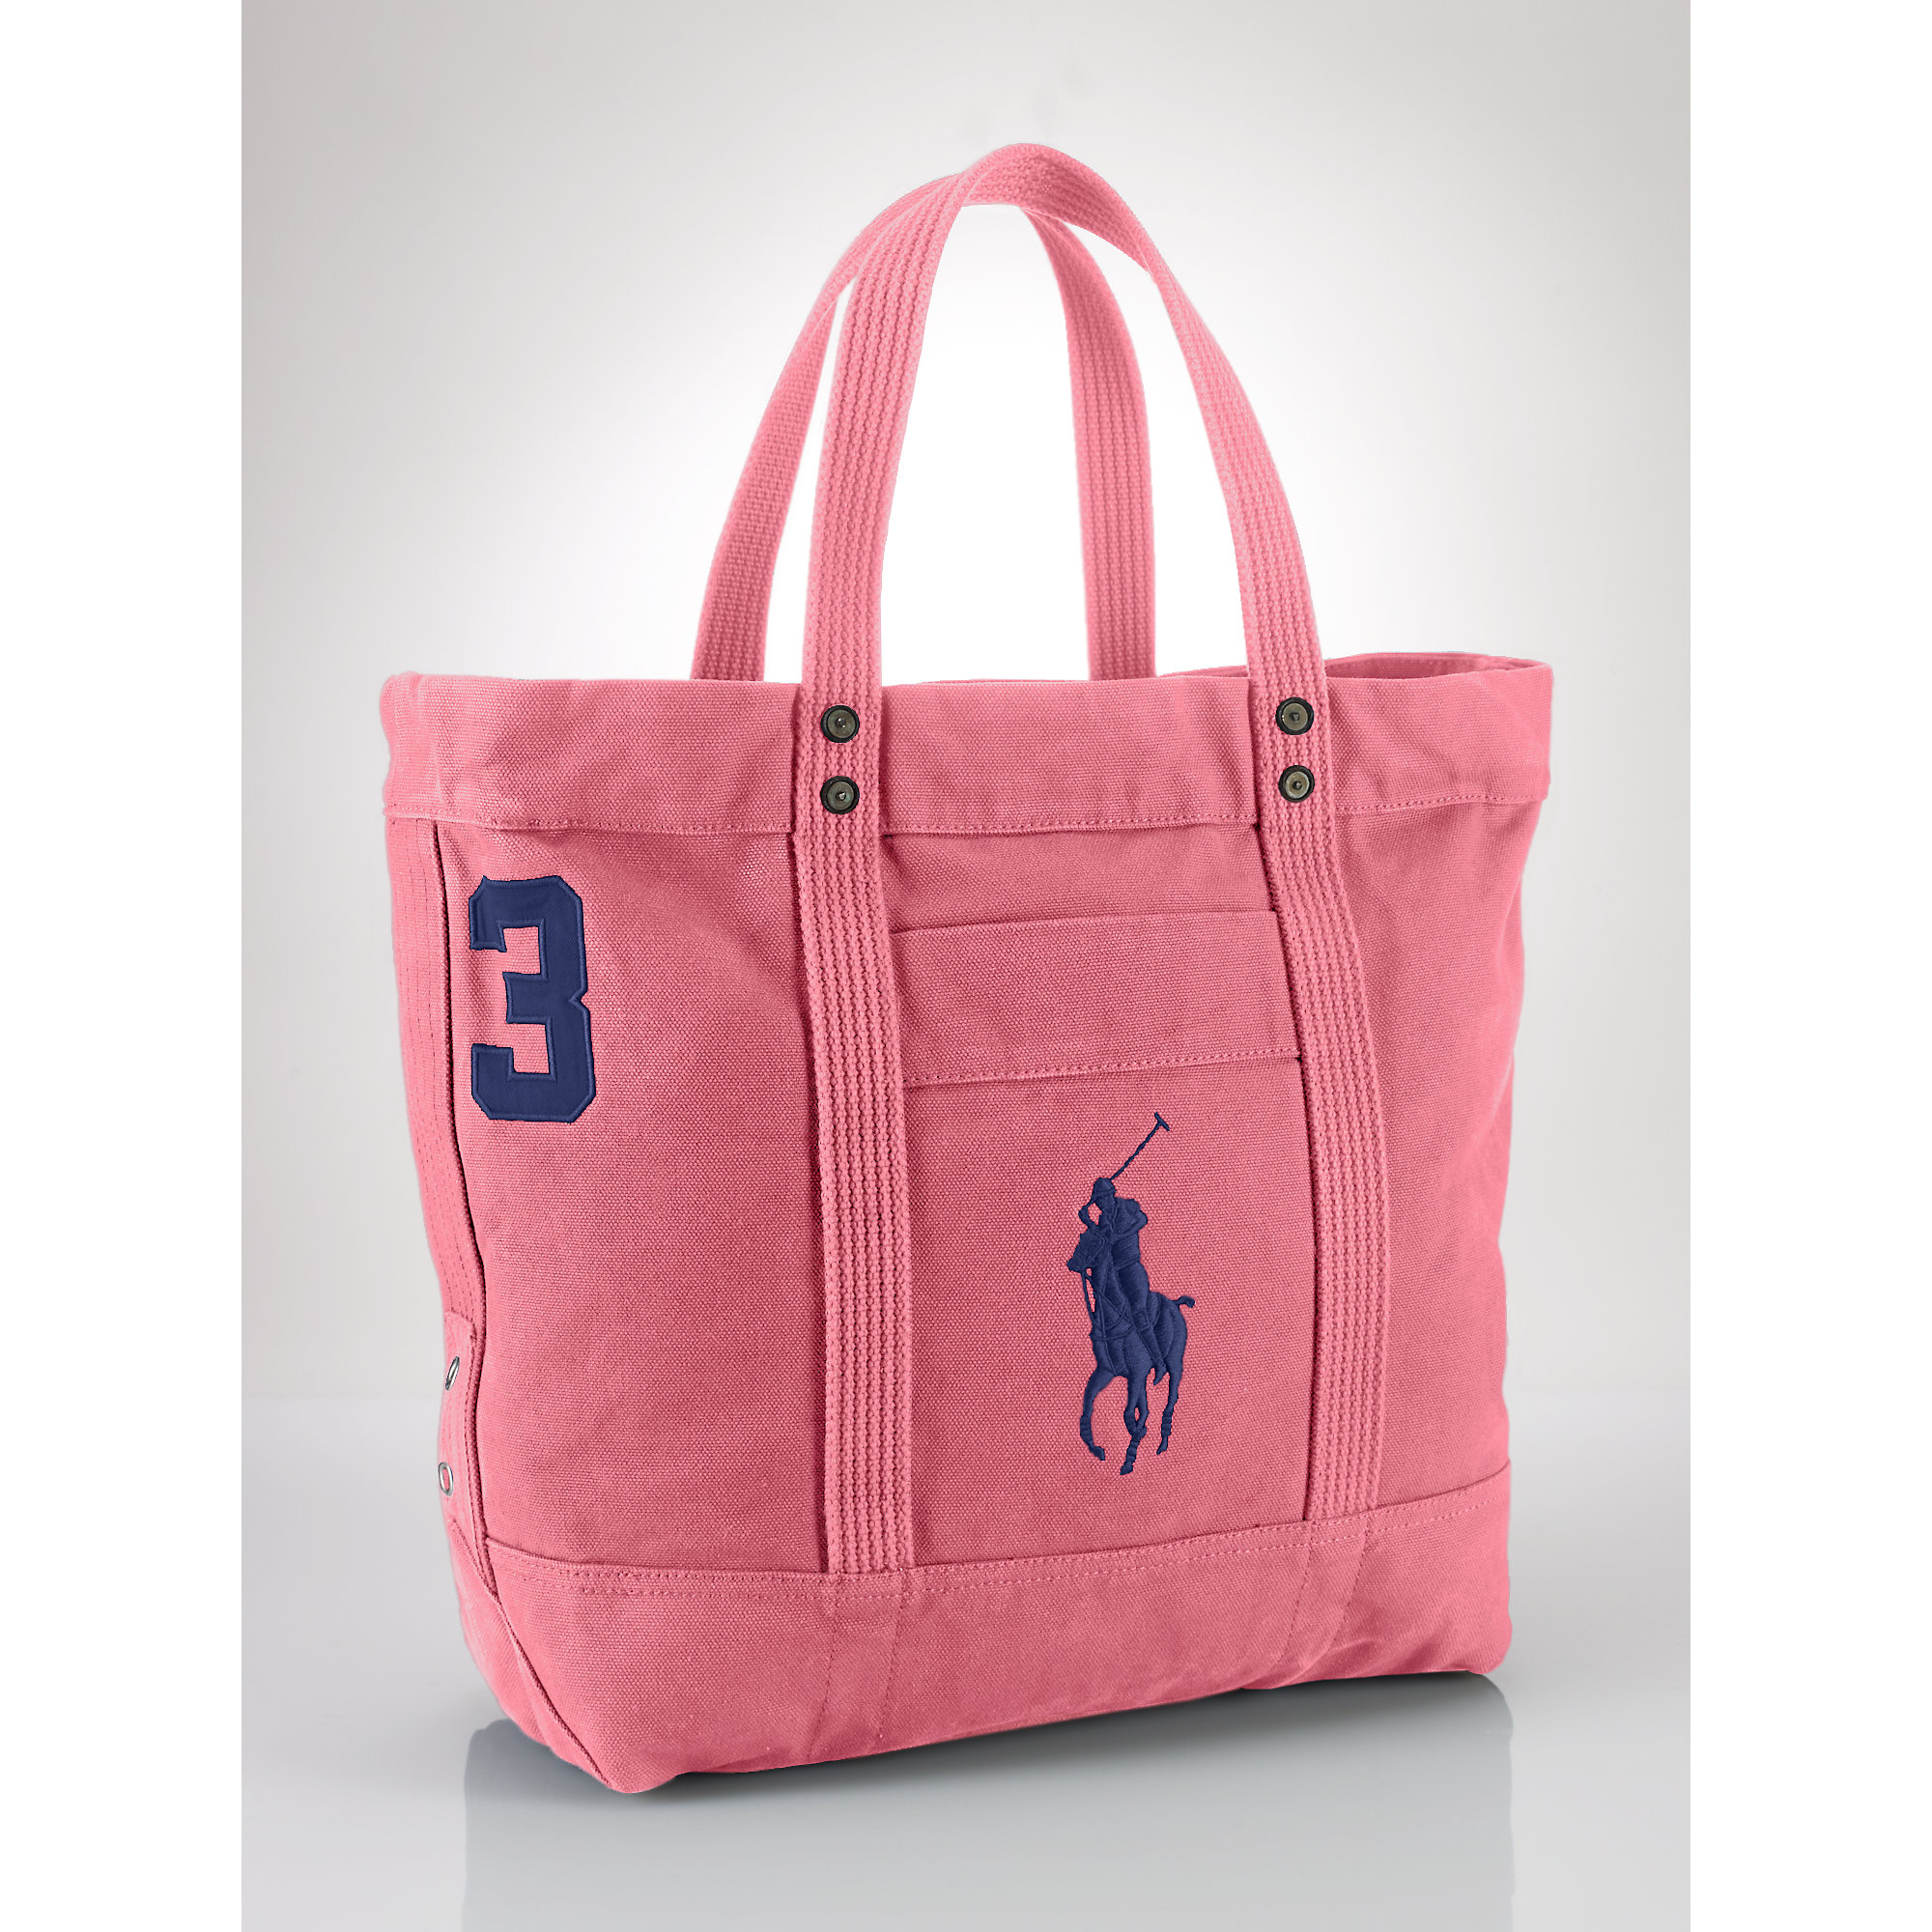 e47059a8c3d0 Lyst - Polo Ralph Lauren Big Pony Zip Tote in Pink for Men